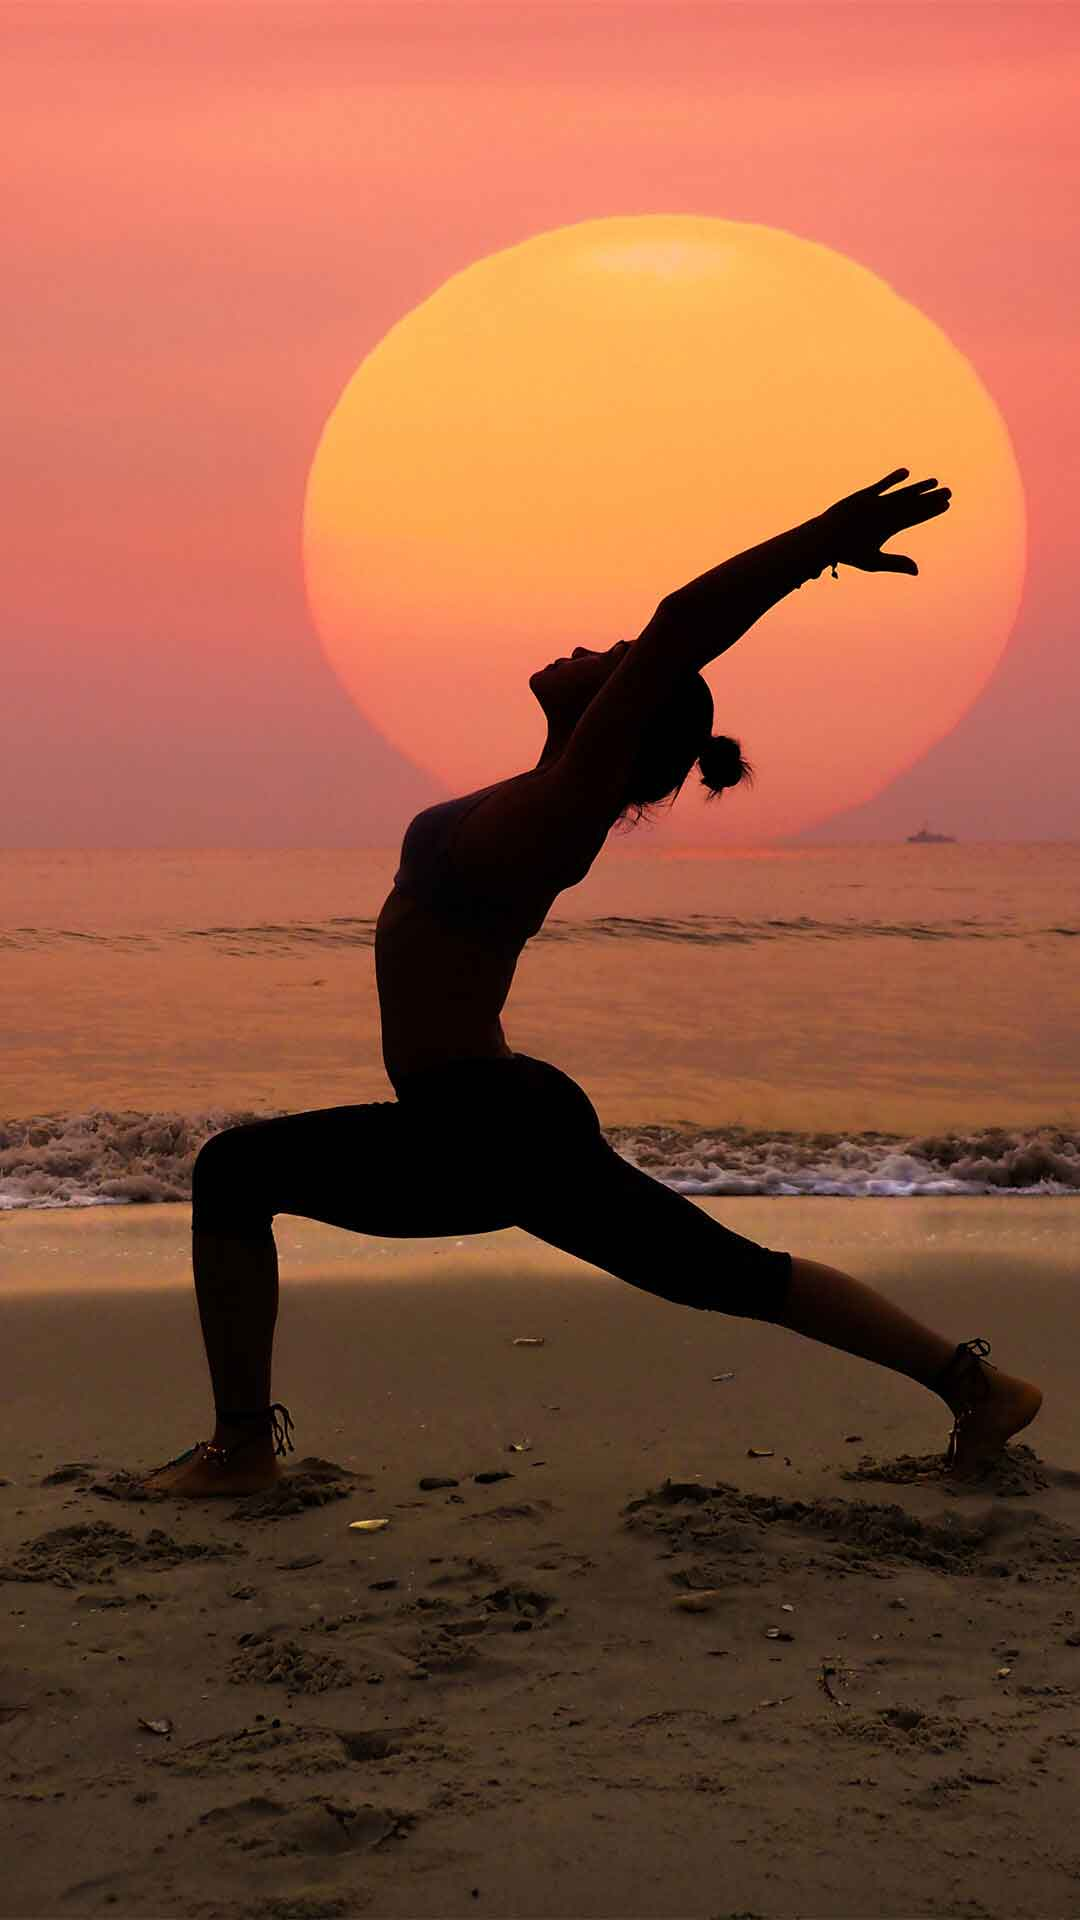 Why is Yoga good for your health?